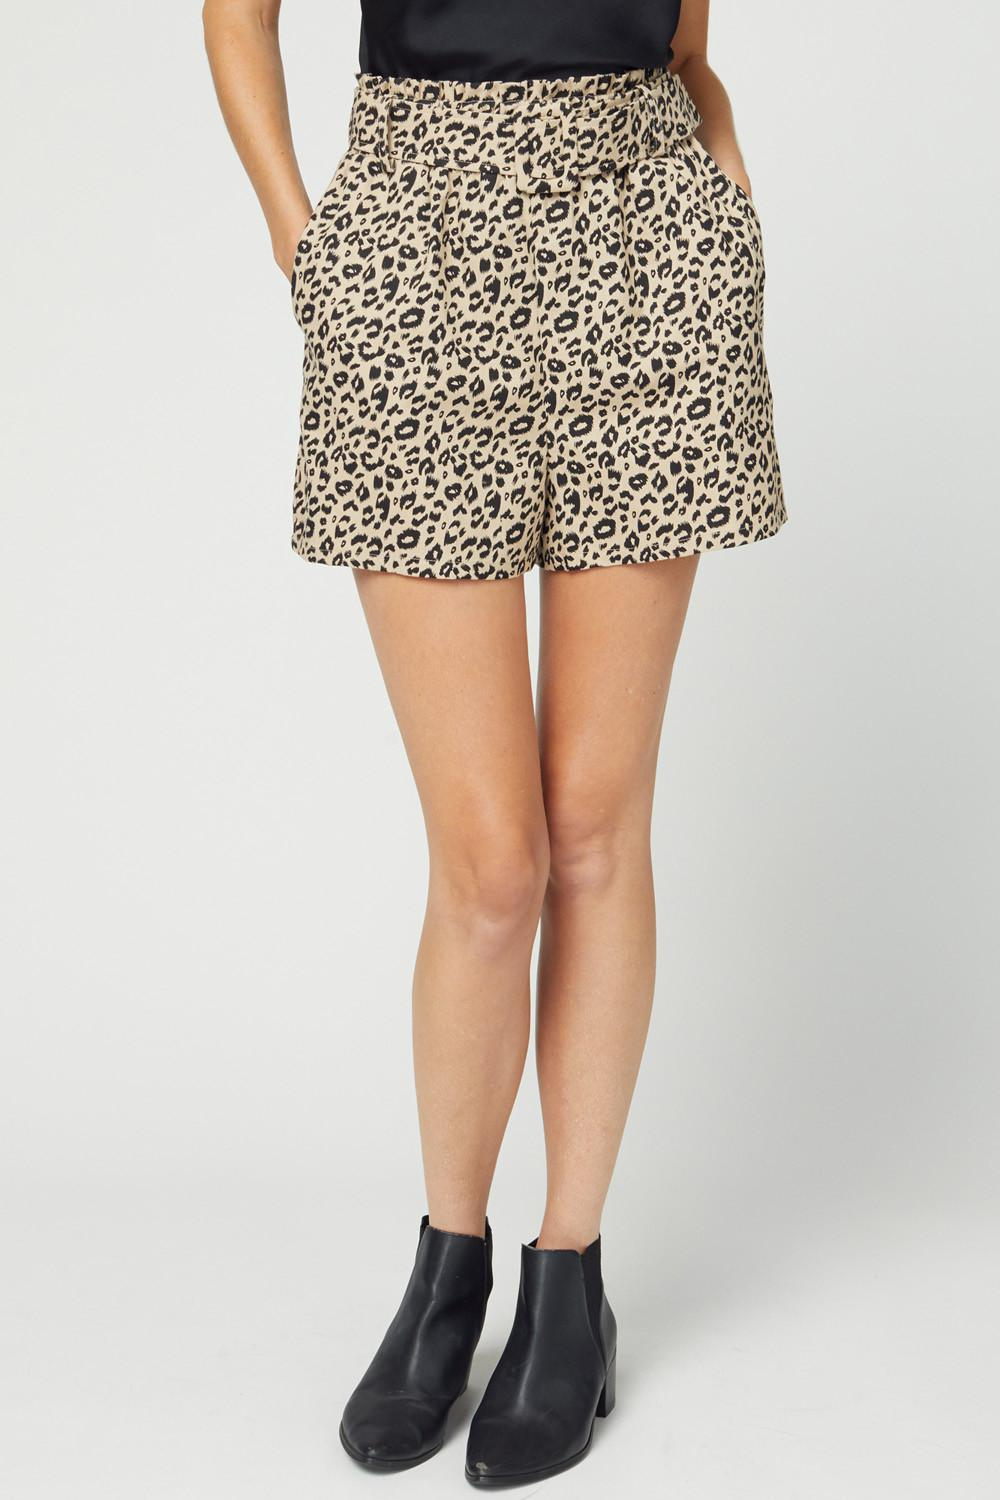 Wild Business High Waisted Dress Shorts